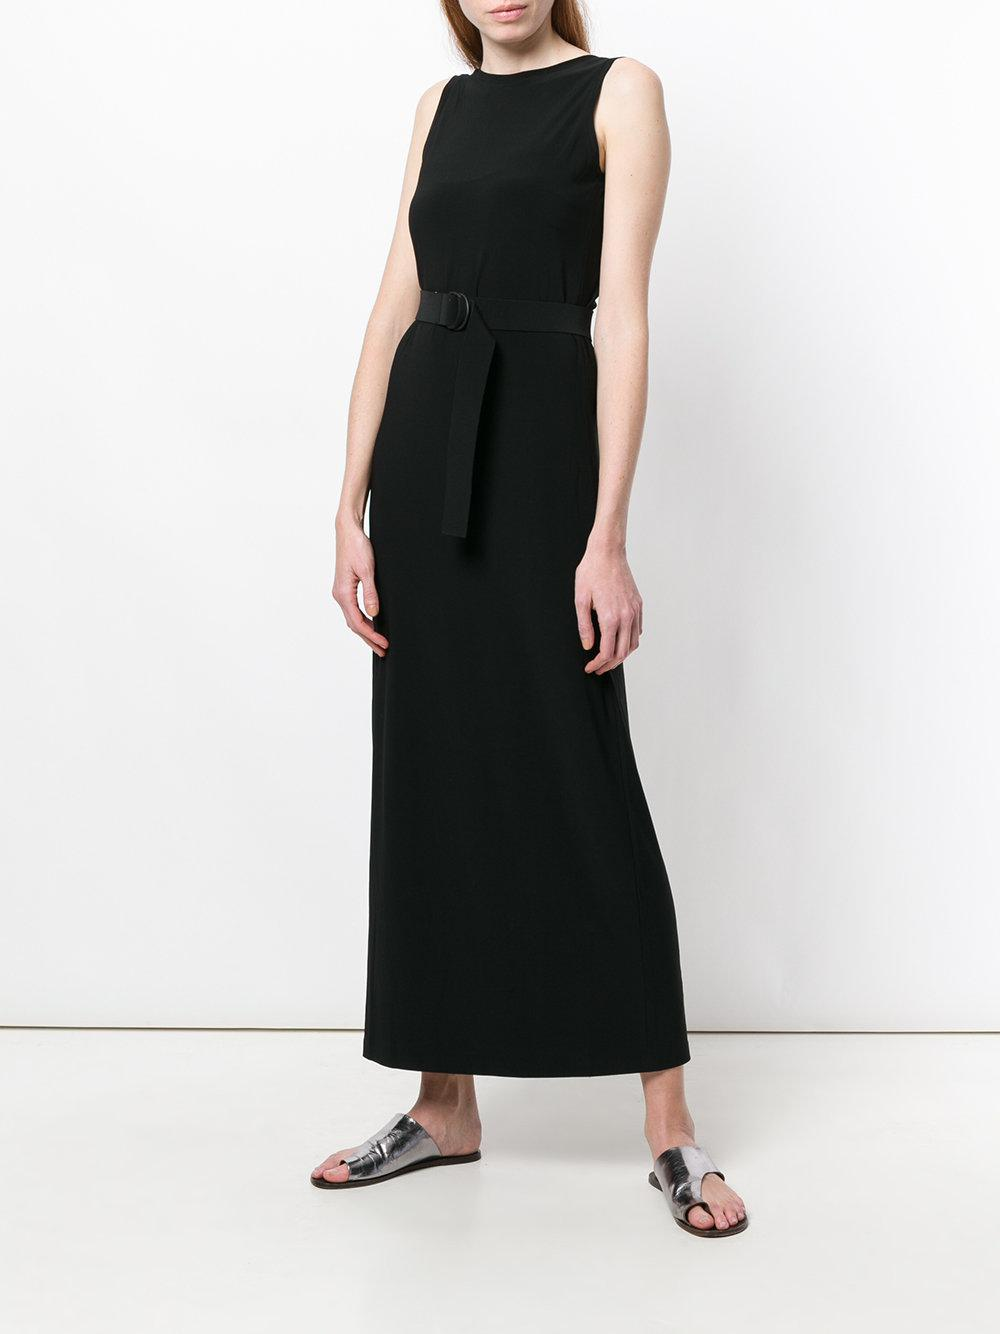 23c11088 norma-kamali-black-Sleeveless-Scoop-Back-Maxi-Dress.jpeg